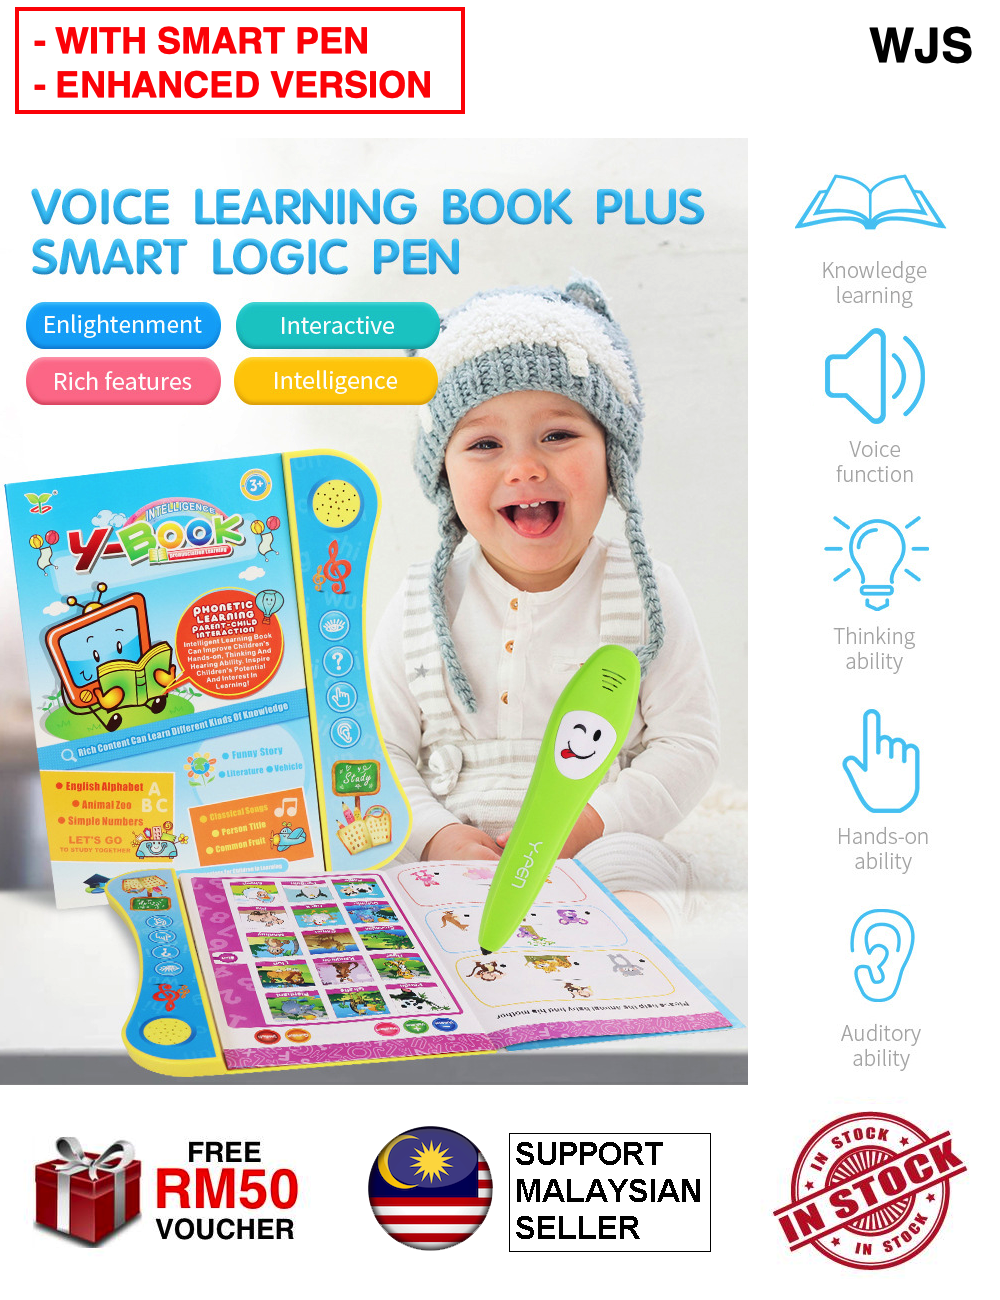 (WITH SMART PEN) WJS Kids Intelligent Y Book + Logic Pen Kids Baby English Learning Ebook E-Book Y-Book Tablet Touch Pad Early Learning Book Learn English Music Book Komputer Kanak-Kanak [FREE RM 50 VOUCHER]